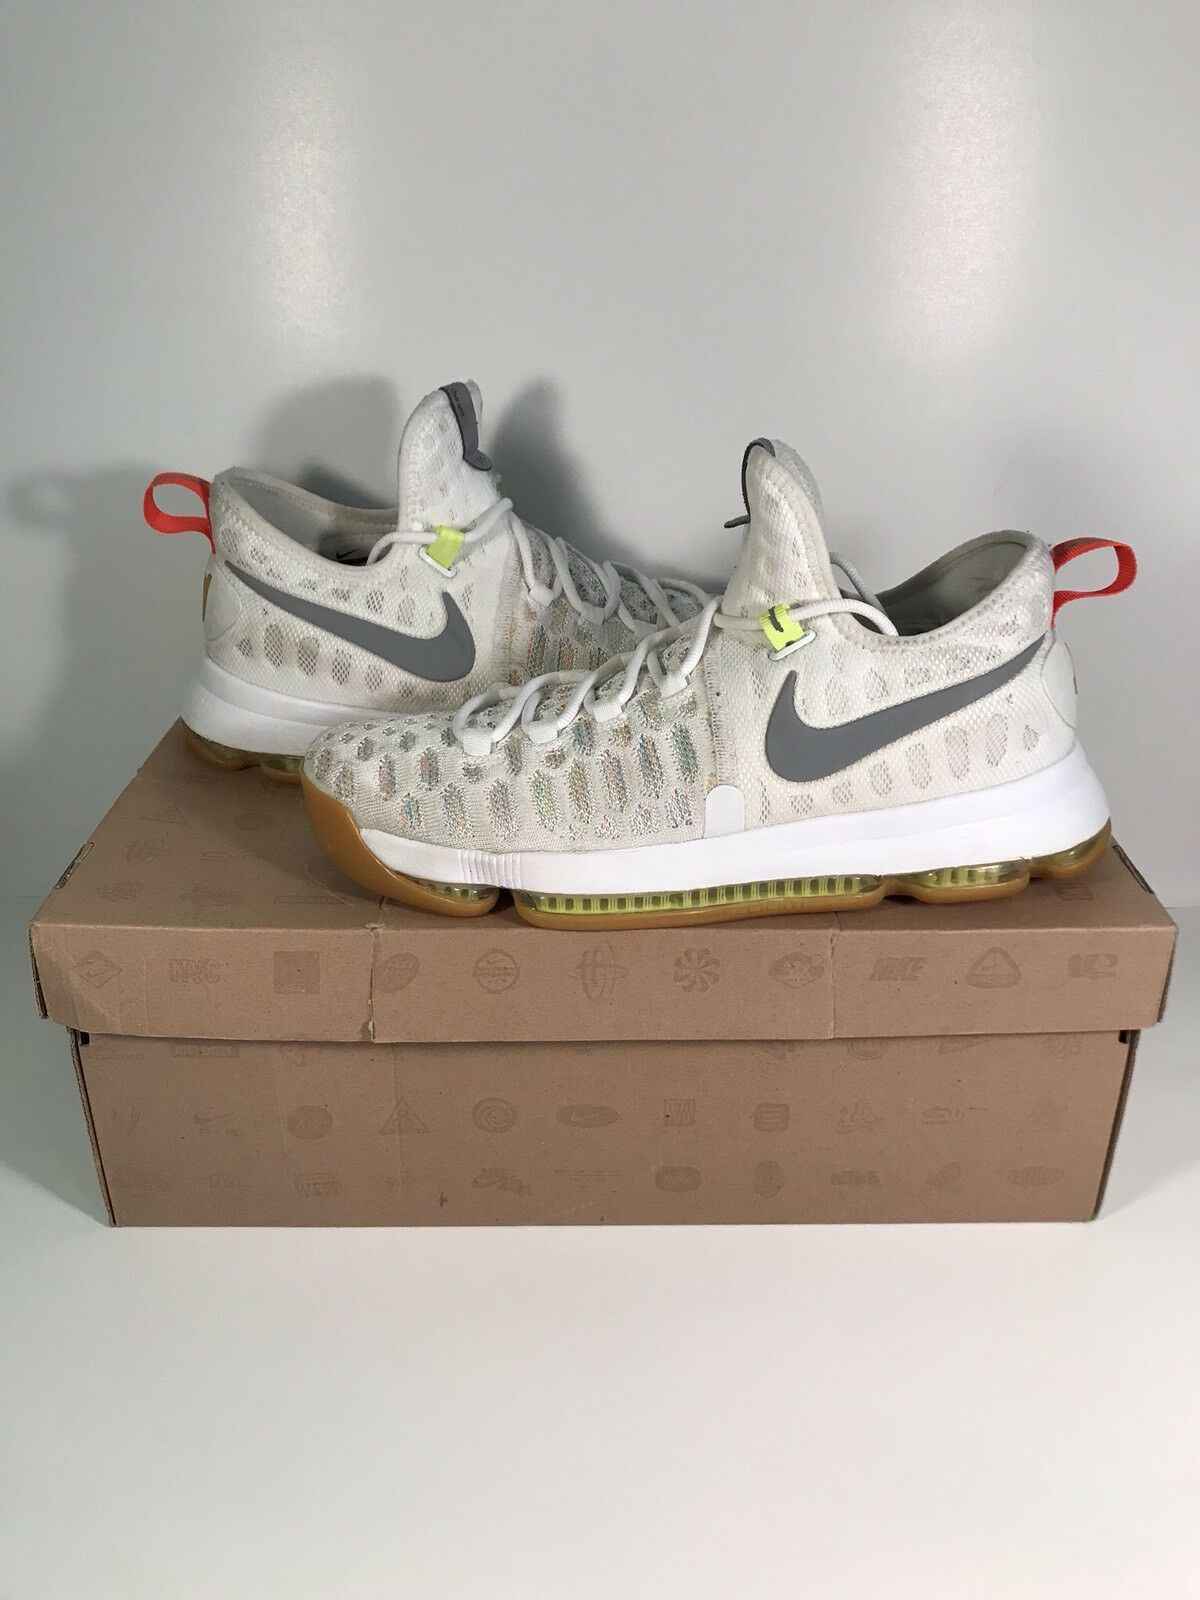 NIKE KD 9 MULTI COLOR STEAL OF A PRICE WHITE GUM BOTTOM